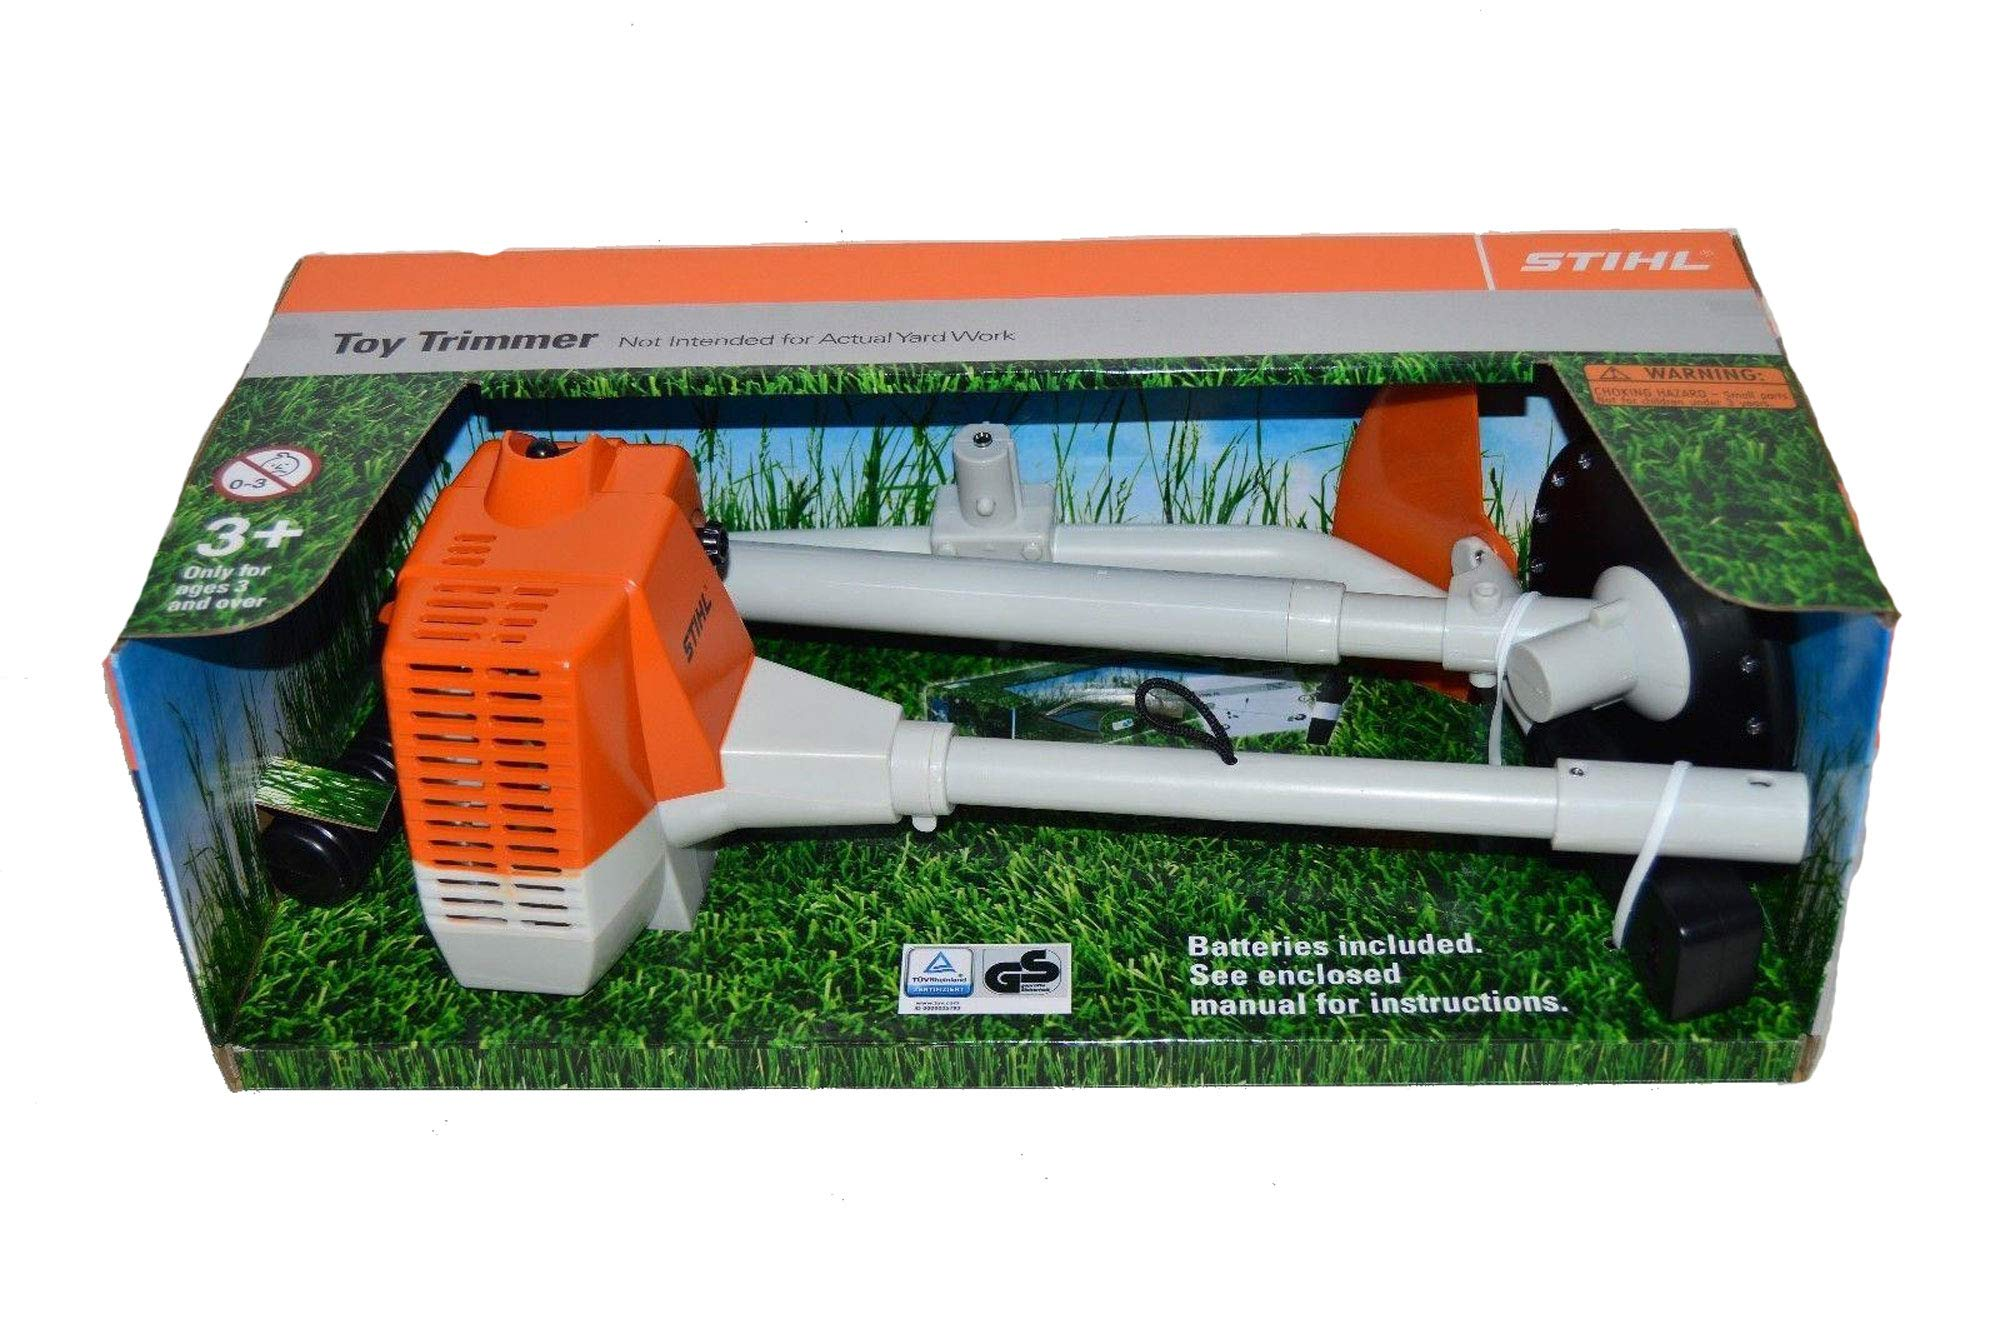 Stihl Battery Operated Brushcutter Strimmer Children Kids Realistic Toy by Stihl